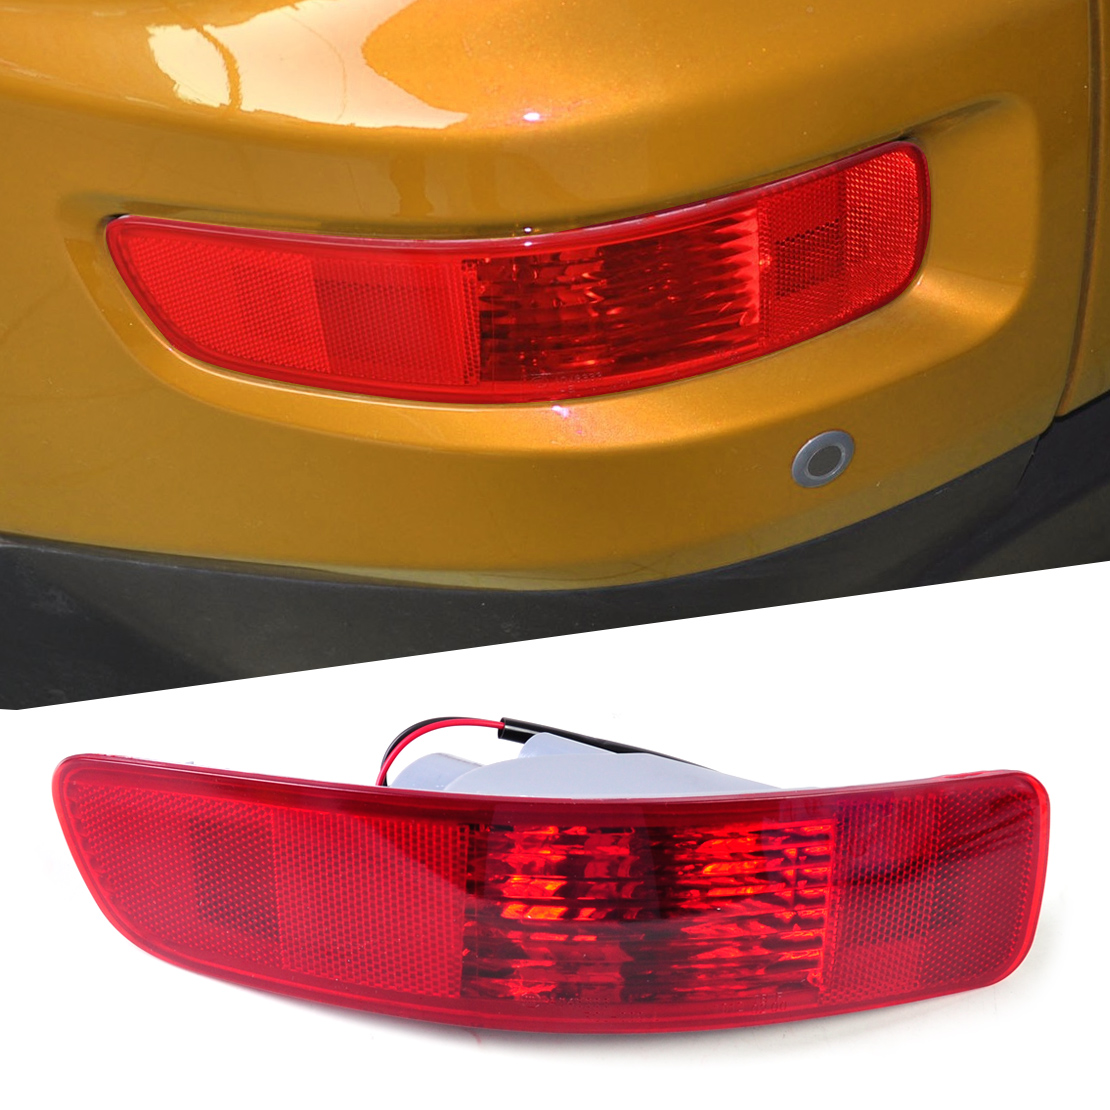 DWCX SL693-LH SL693 Rear Fog Lamp Light Left Side for Mitsubishi Outlander 2007 2008 2009 2010 2011 2012 2013 beler rear left side fog light bumper lamp reflector sl693 lh fit for mitsubishi outlander 2007 2008 2009 2010 2011 2012 2013